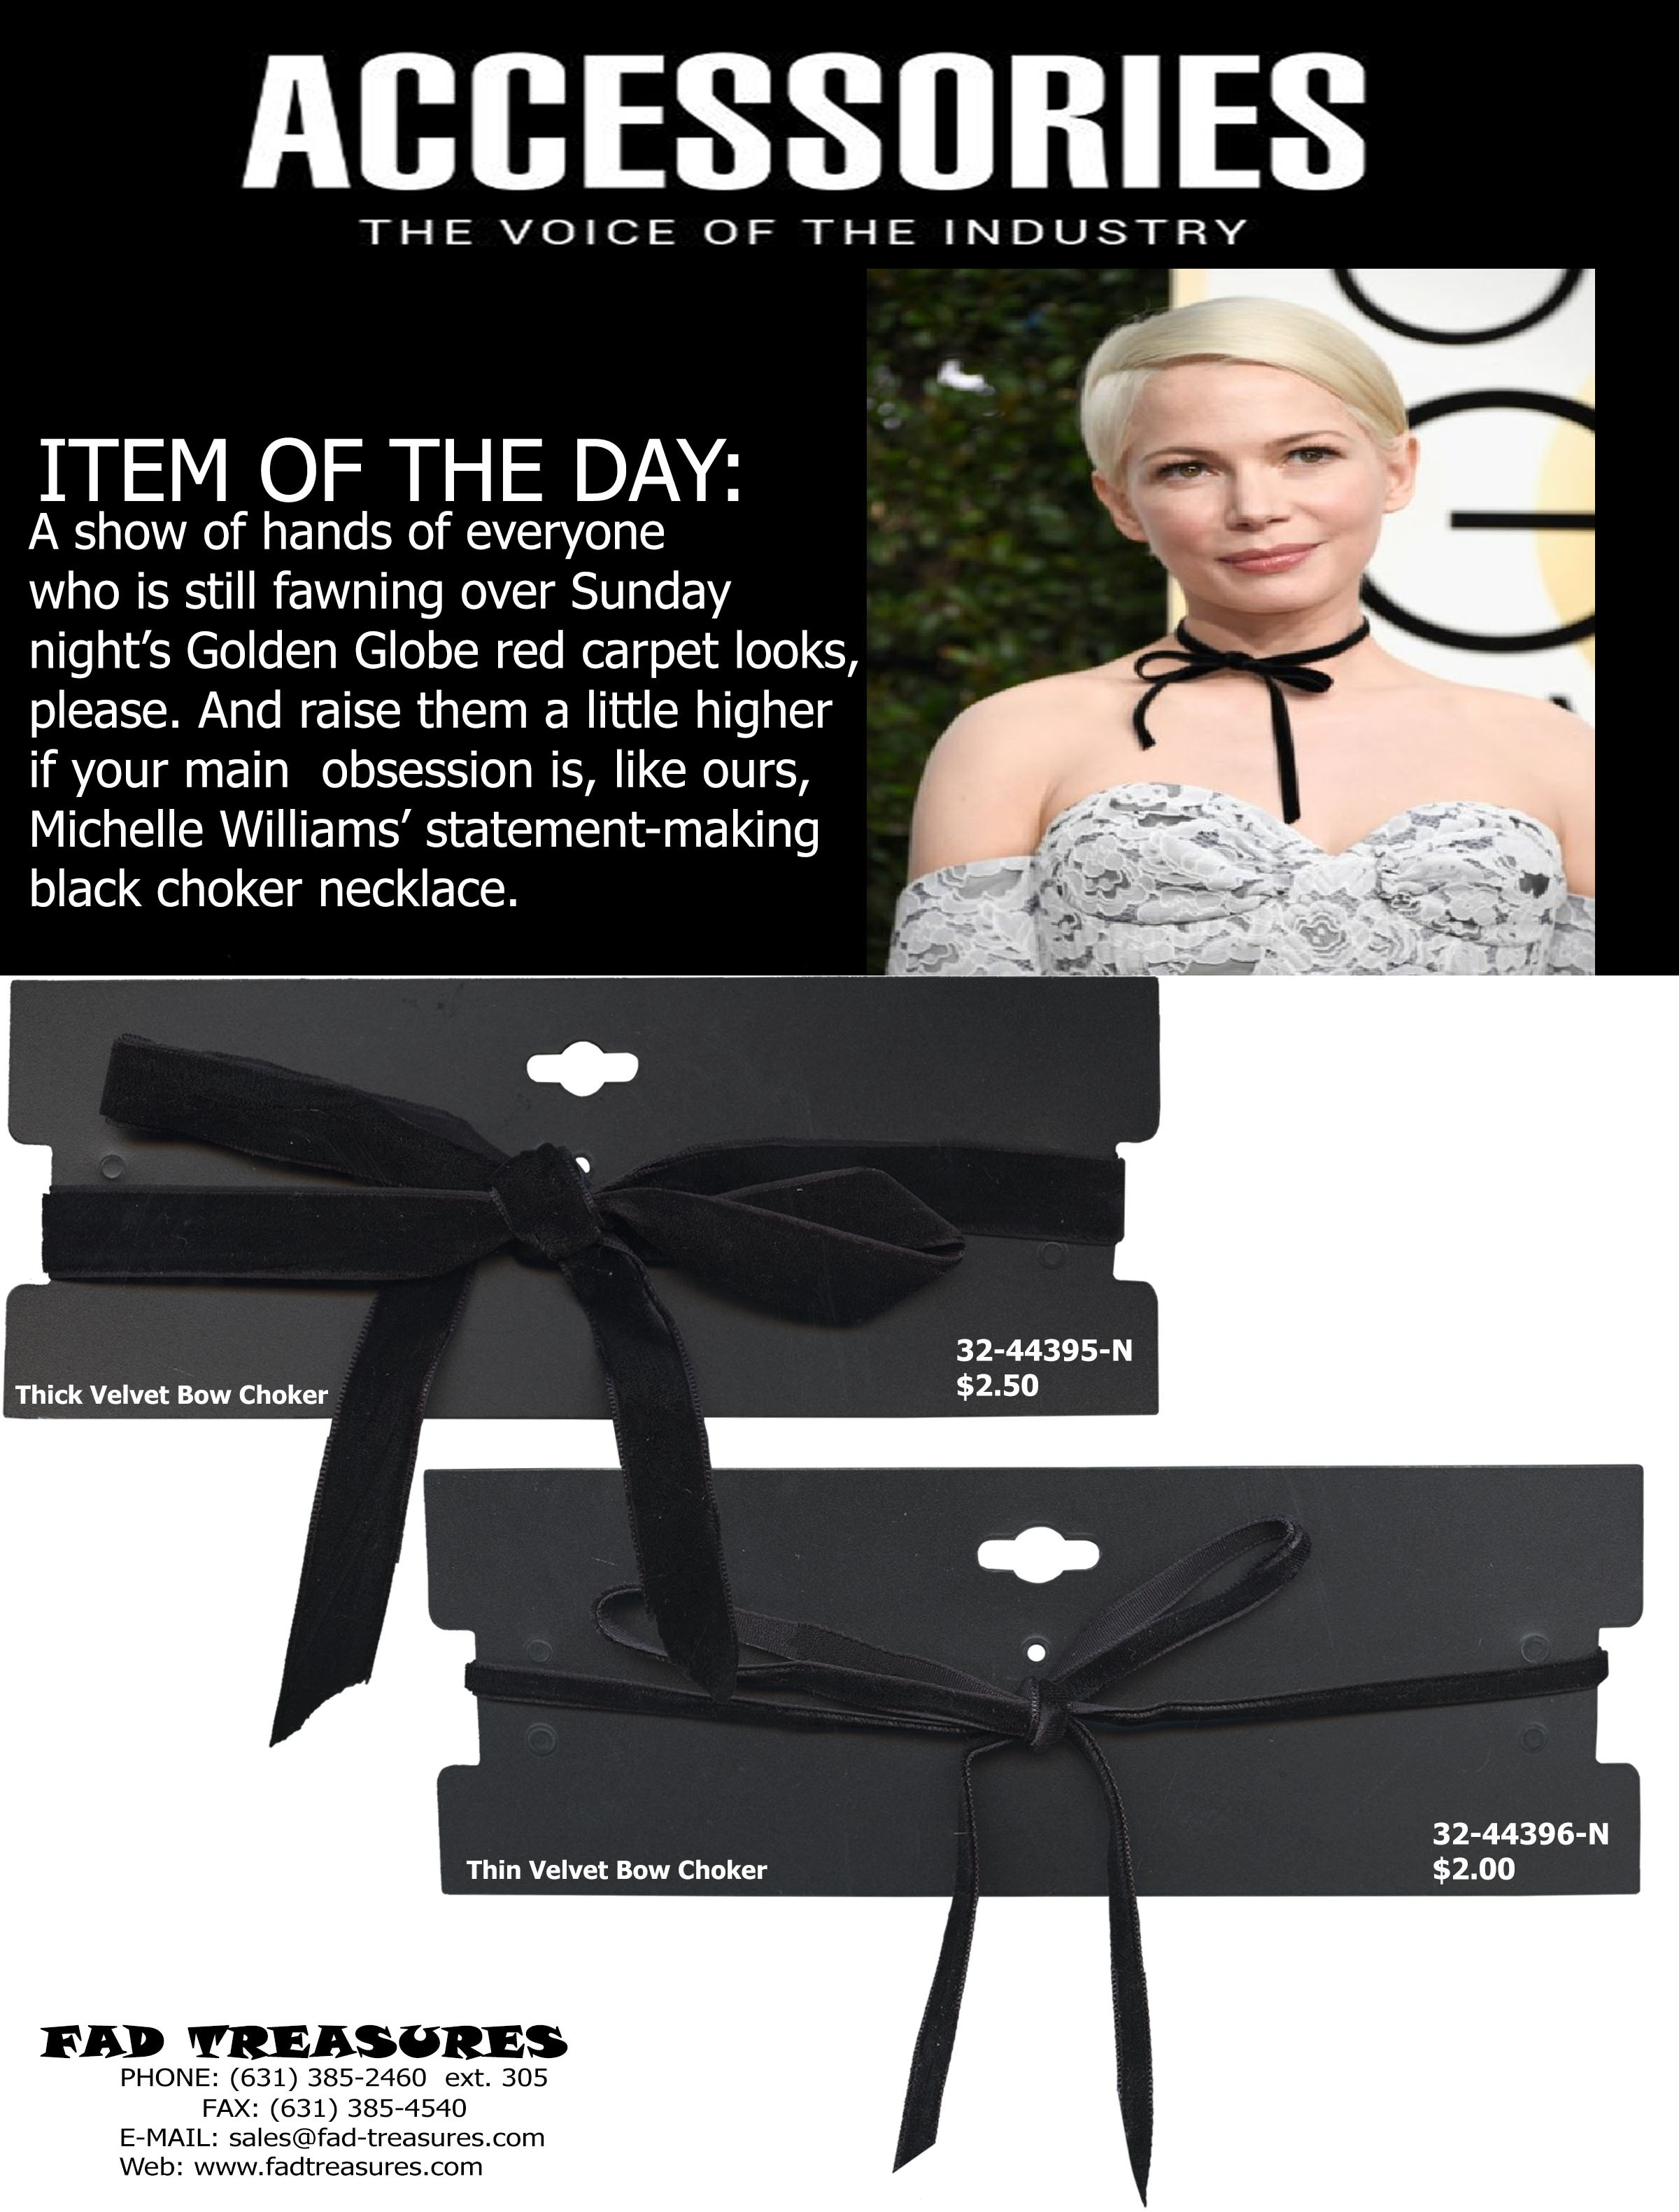 Choker Item of the Day Flyer